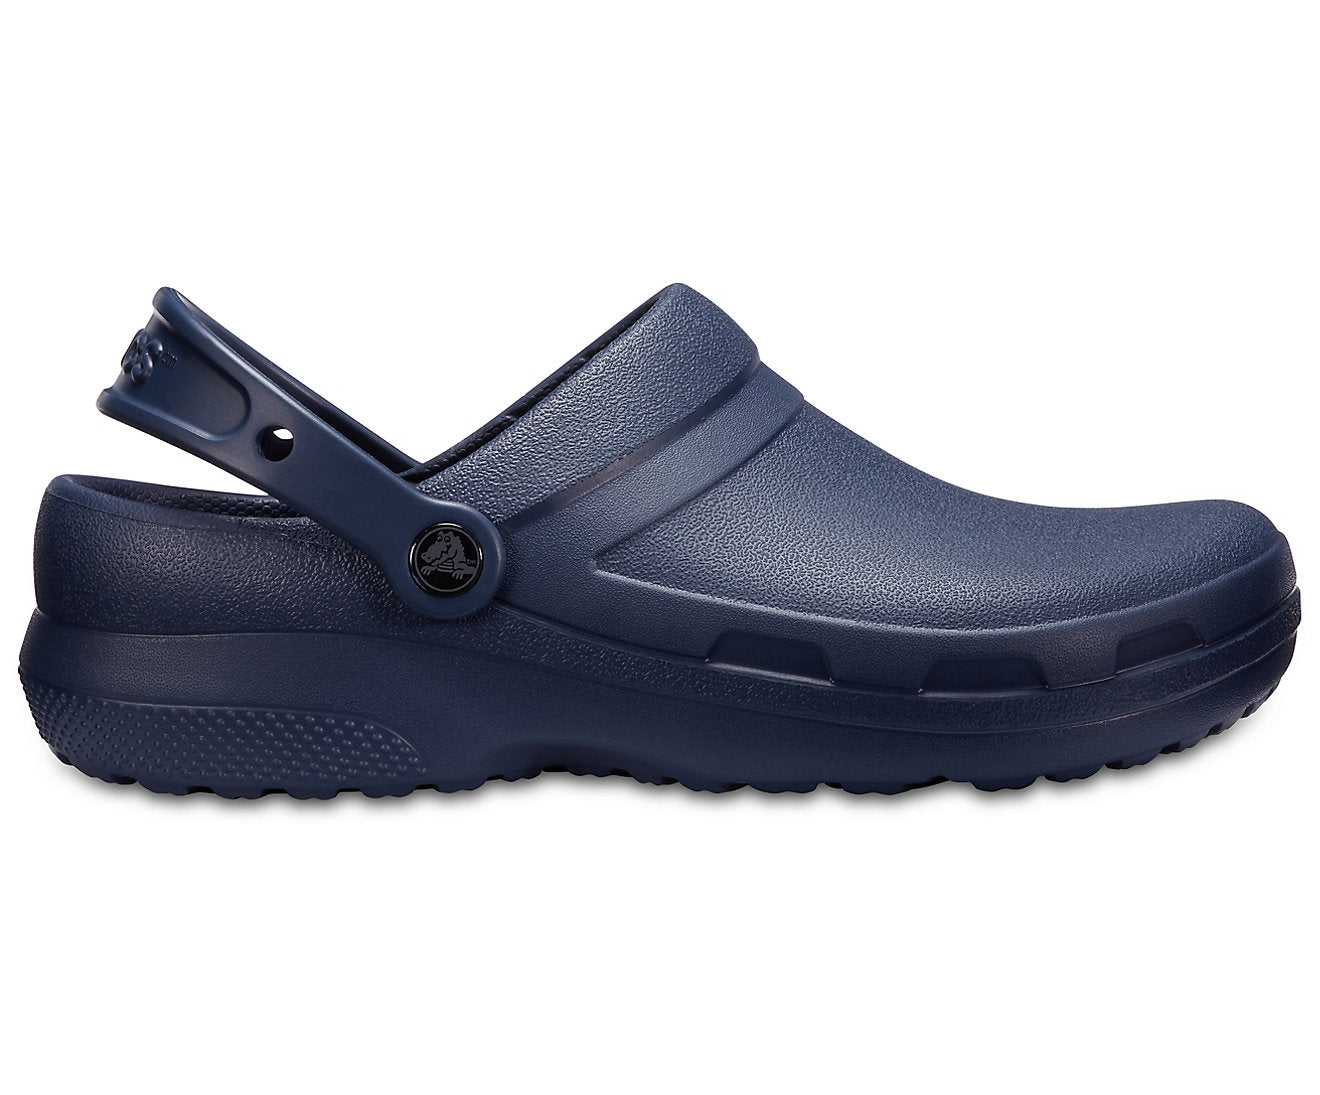 CROCS WORK SPECIALIST 2 ADULT NAVY CLOG